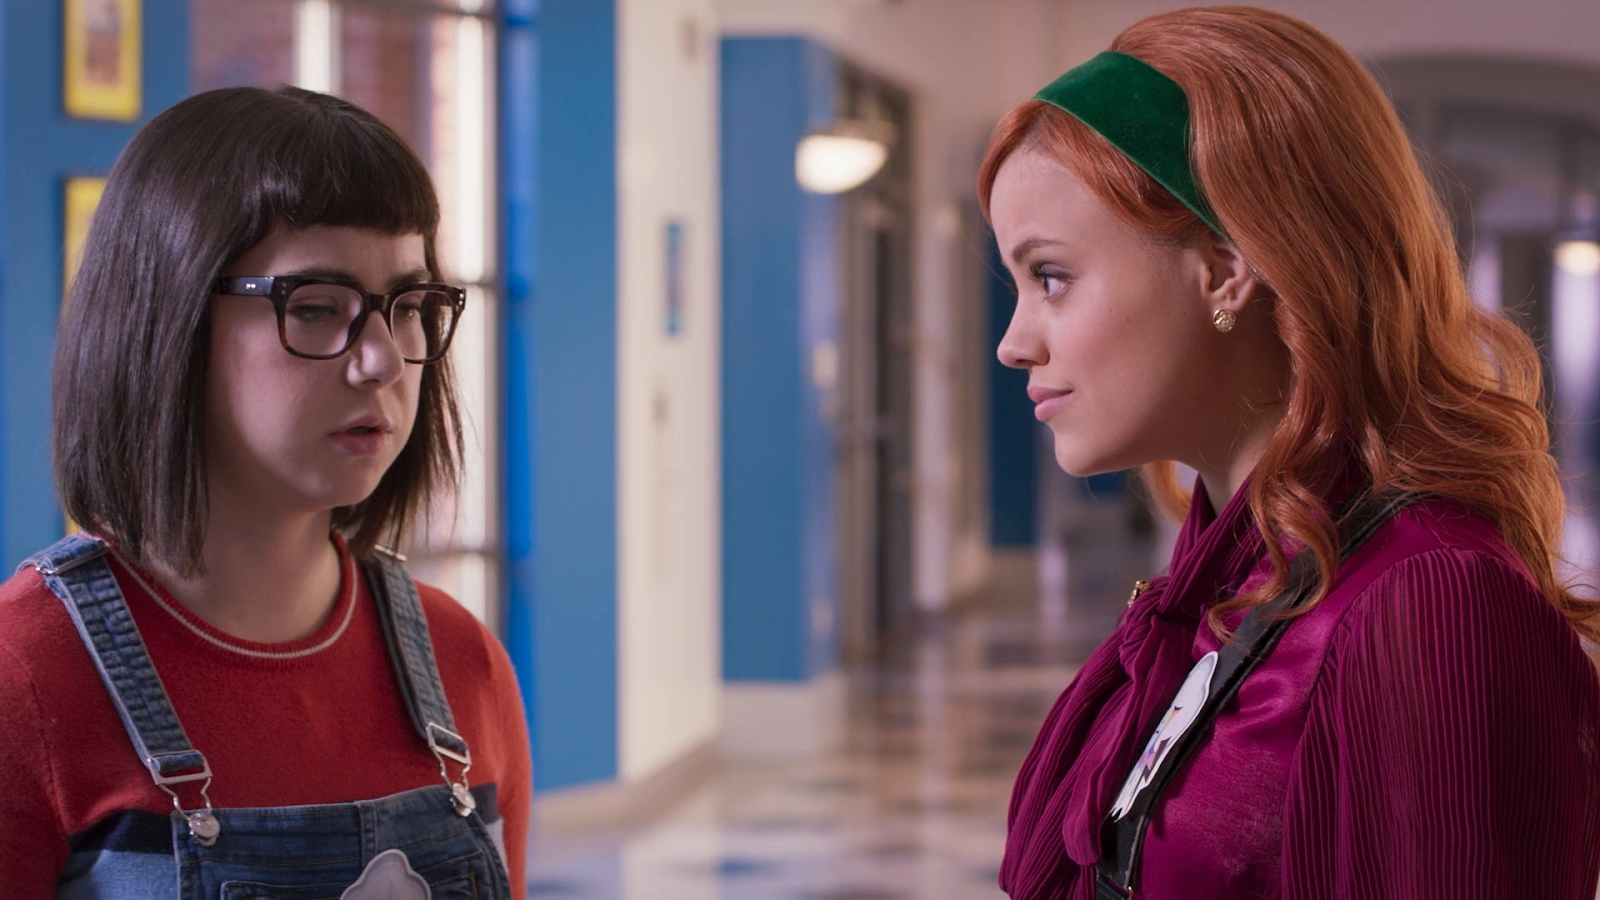 Daphne & Velma (2018) BRRip 1080p Latino-Ingles captura 4